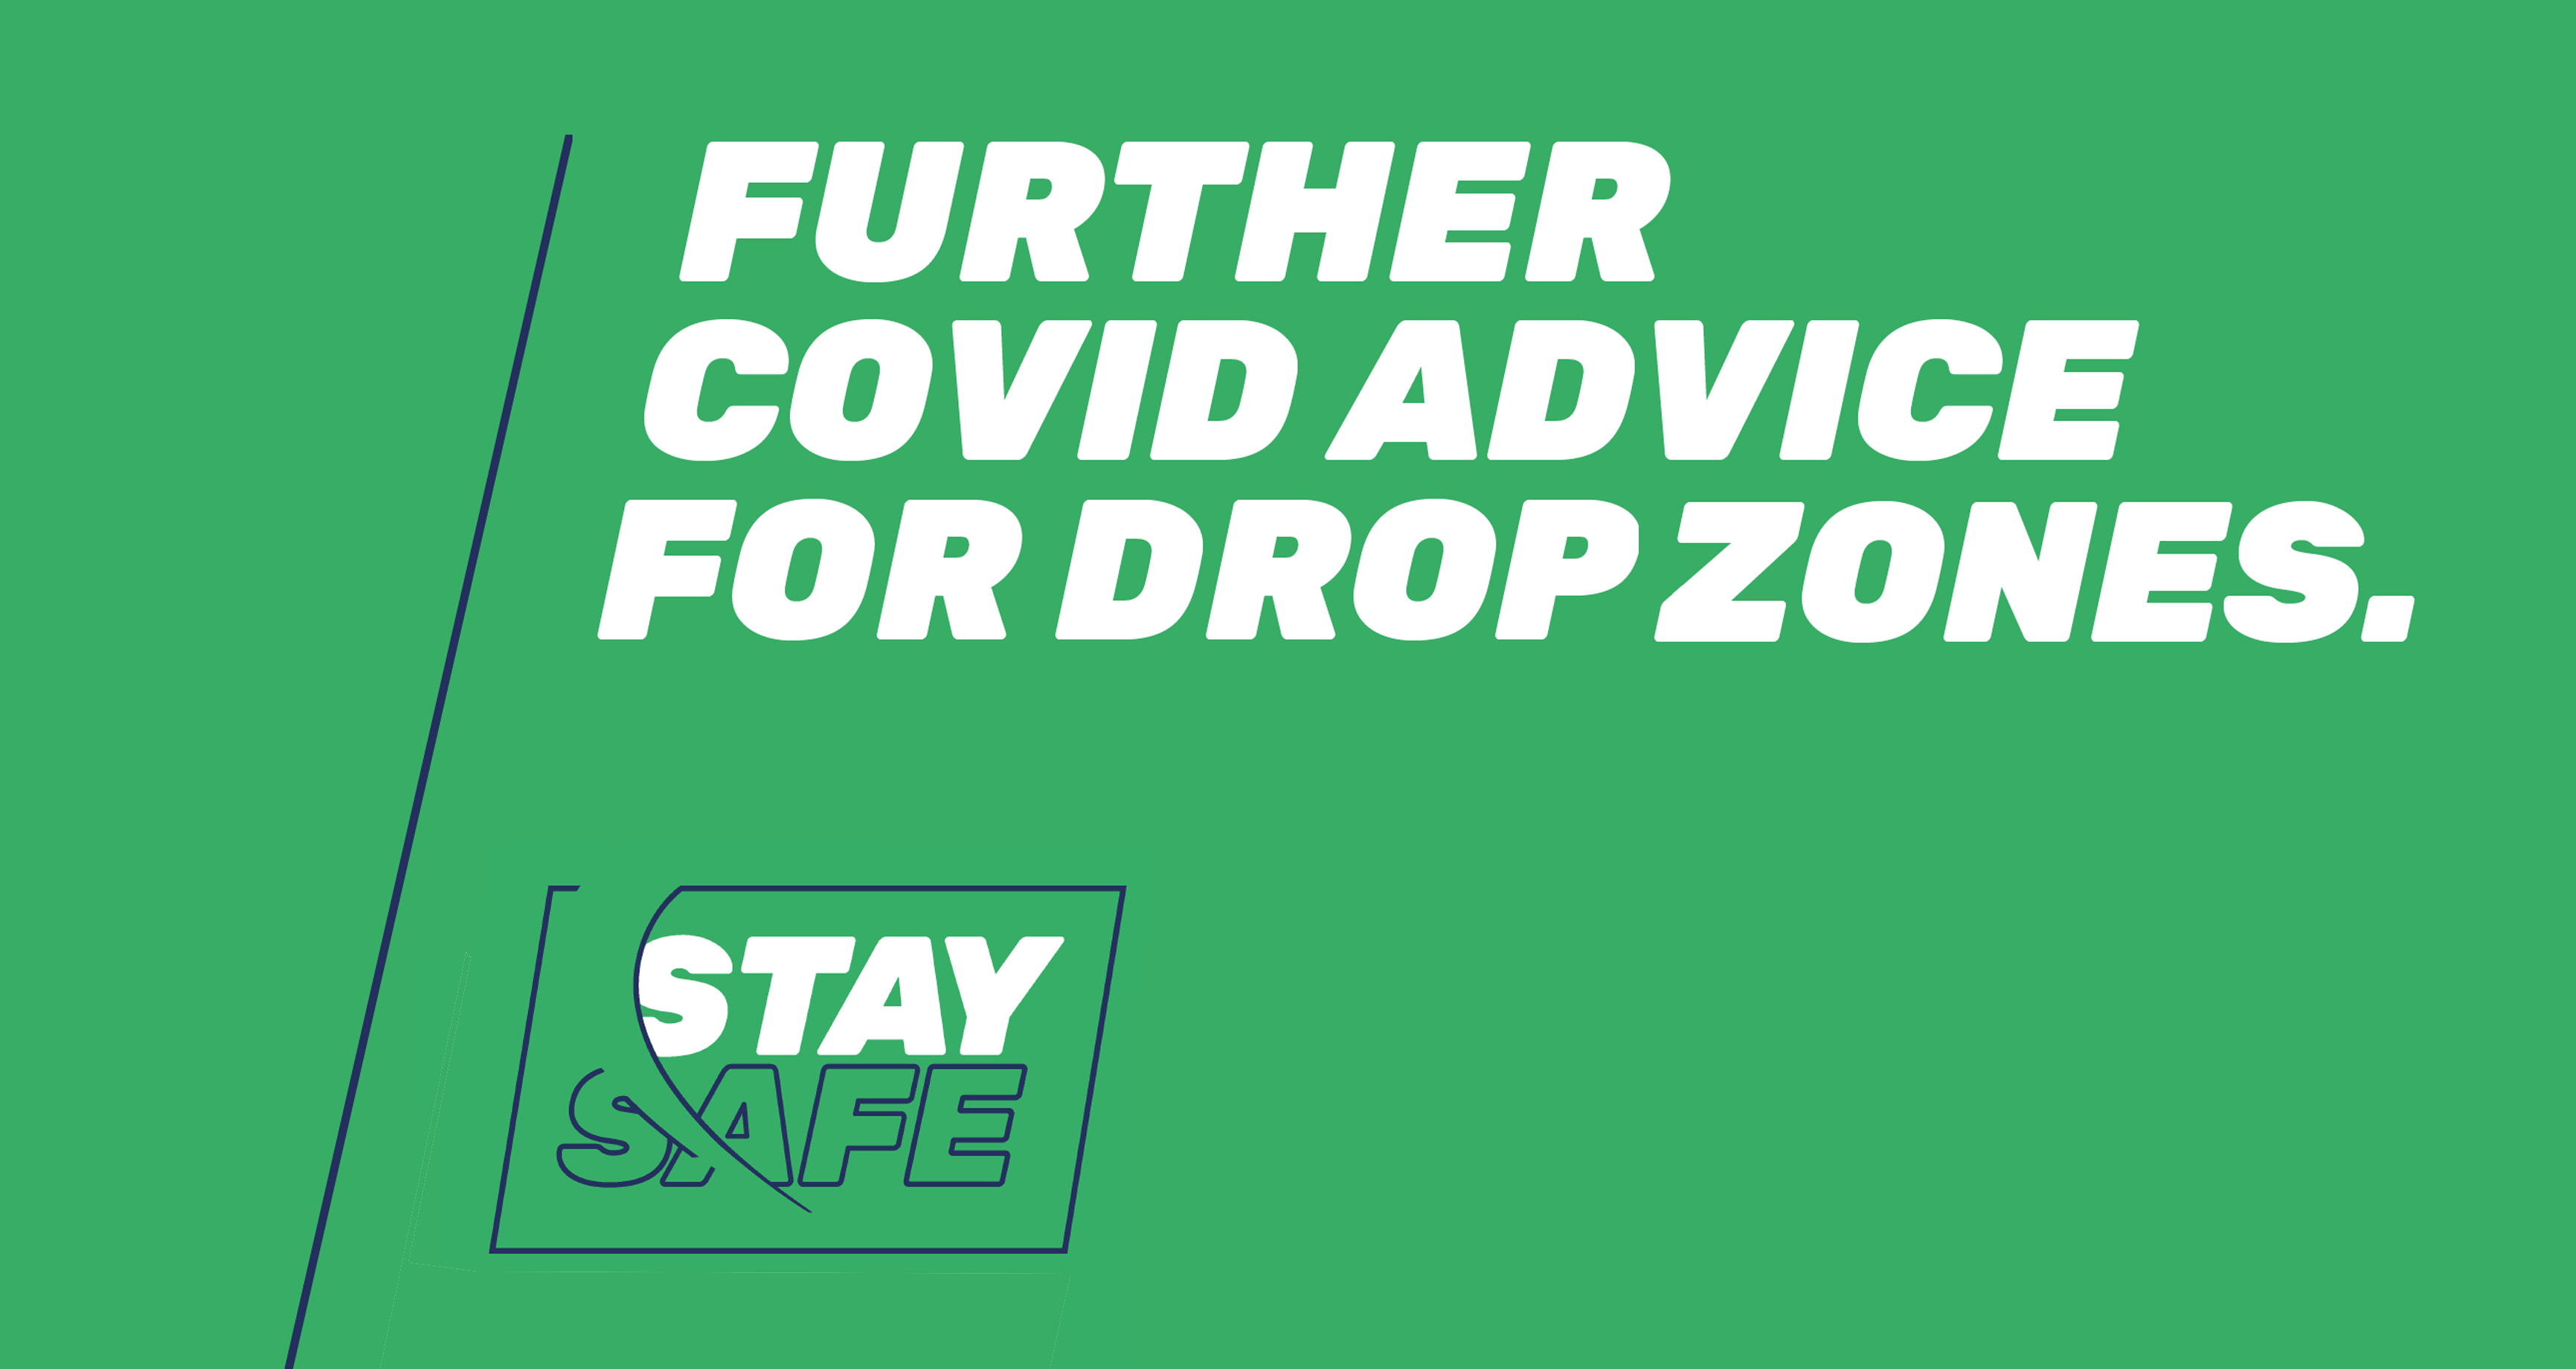 Further Covid Advice for Drop Zones